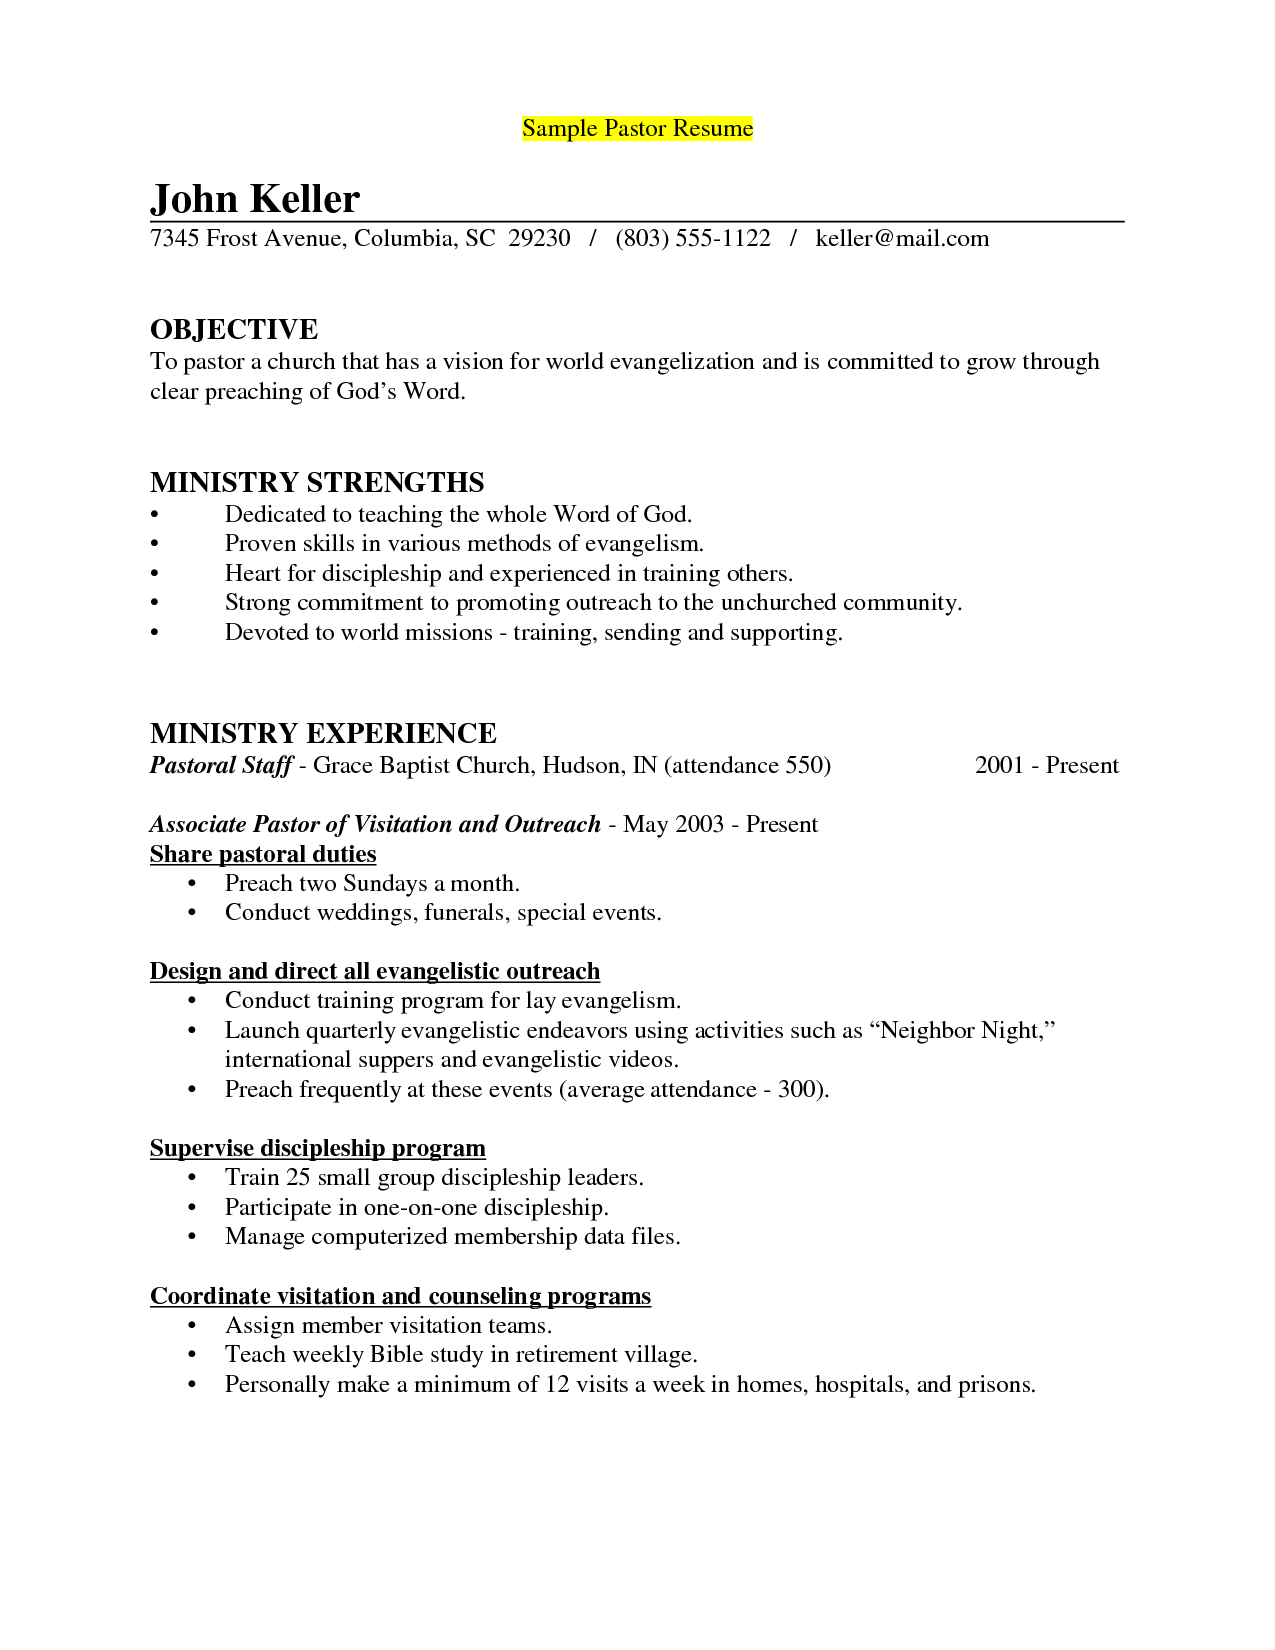 A Guide to Writing A Pastoral Resume